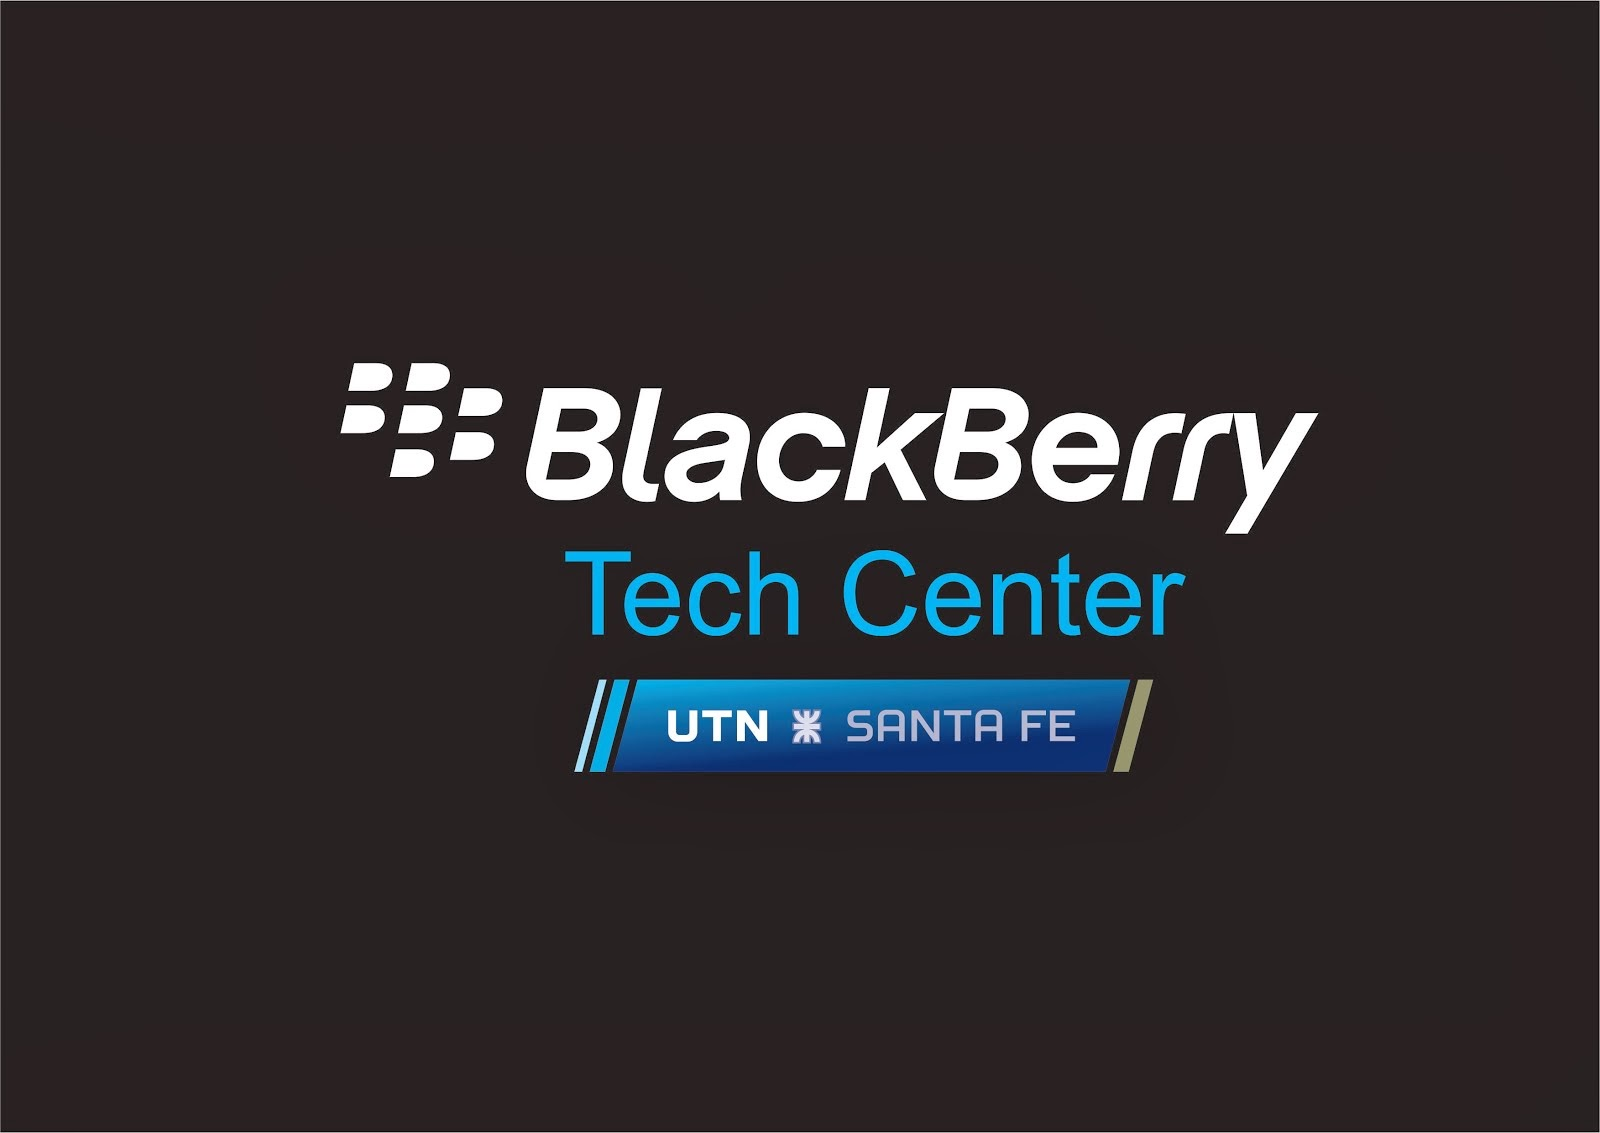 BlackBerry Tech Center Santa Fe